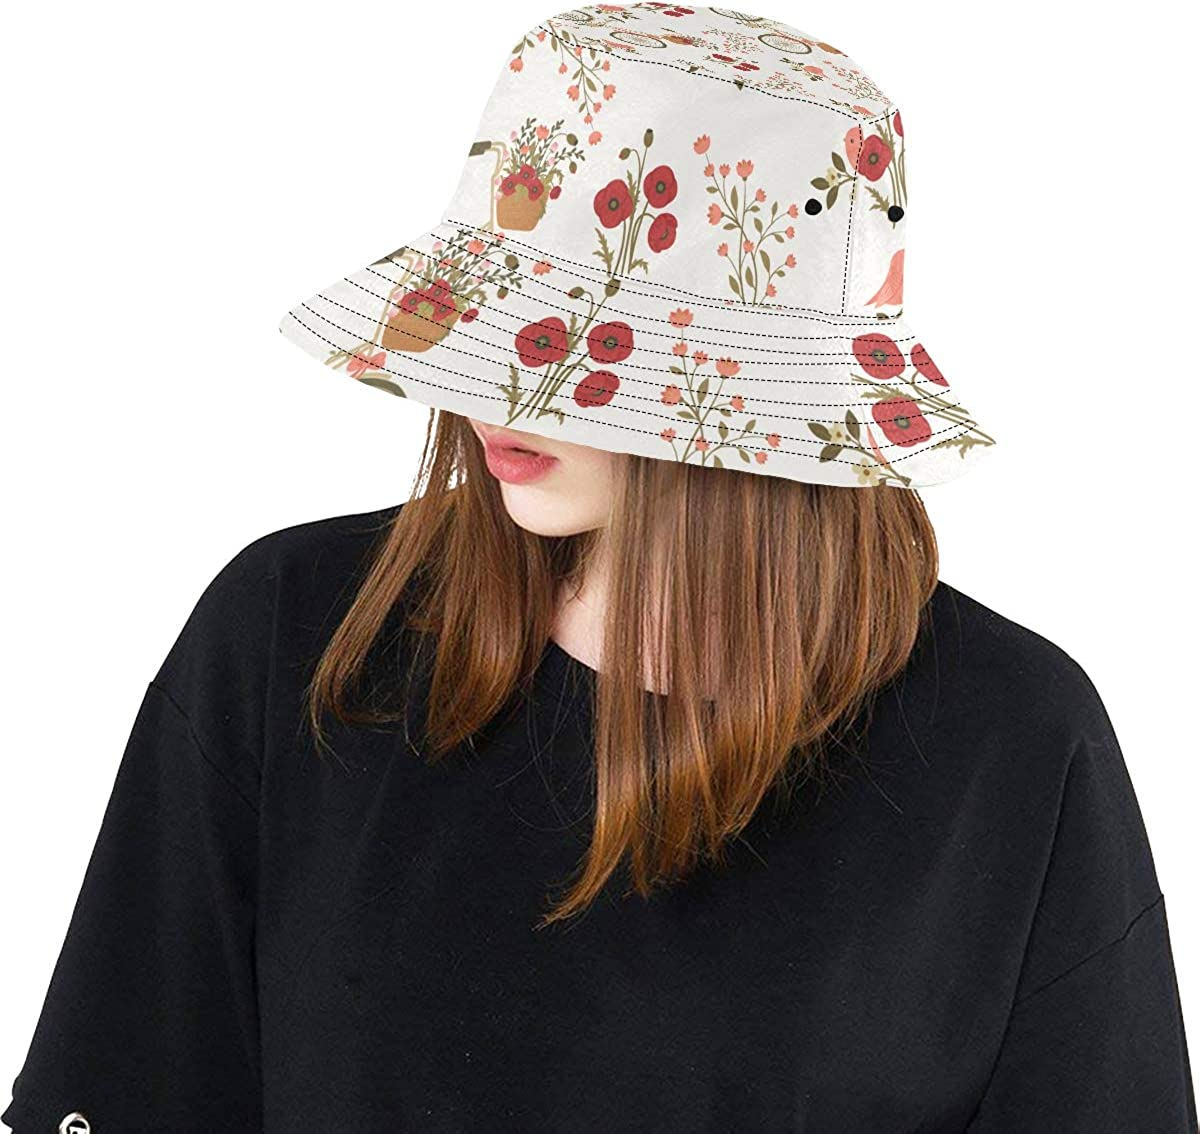 Bicycle Around Flower Summer Unisex Fishing Sun Top Bucket Hats for Kid Teens Women and Men with Packable Fisherman Cap for Outdoor Baseball Sport Picnic